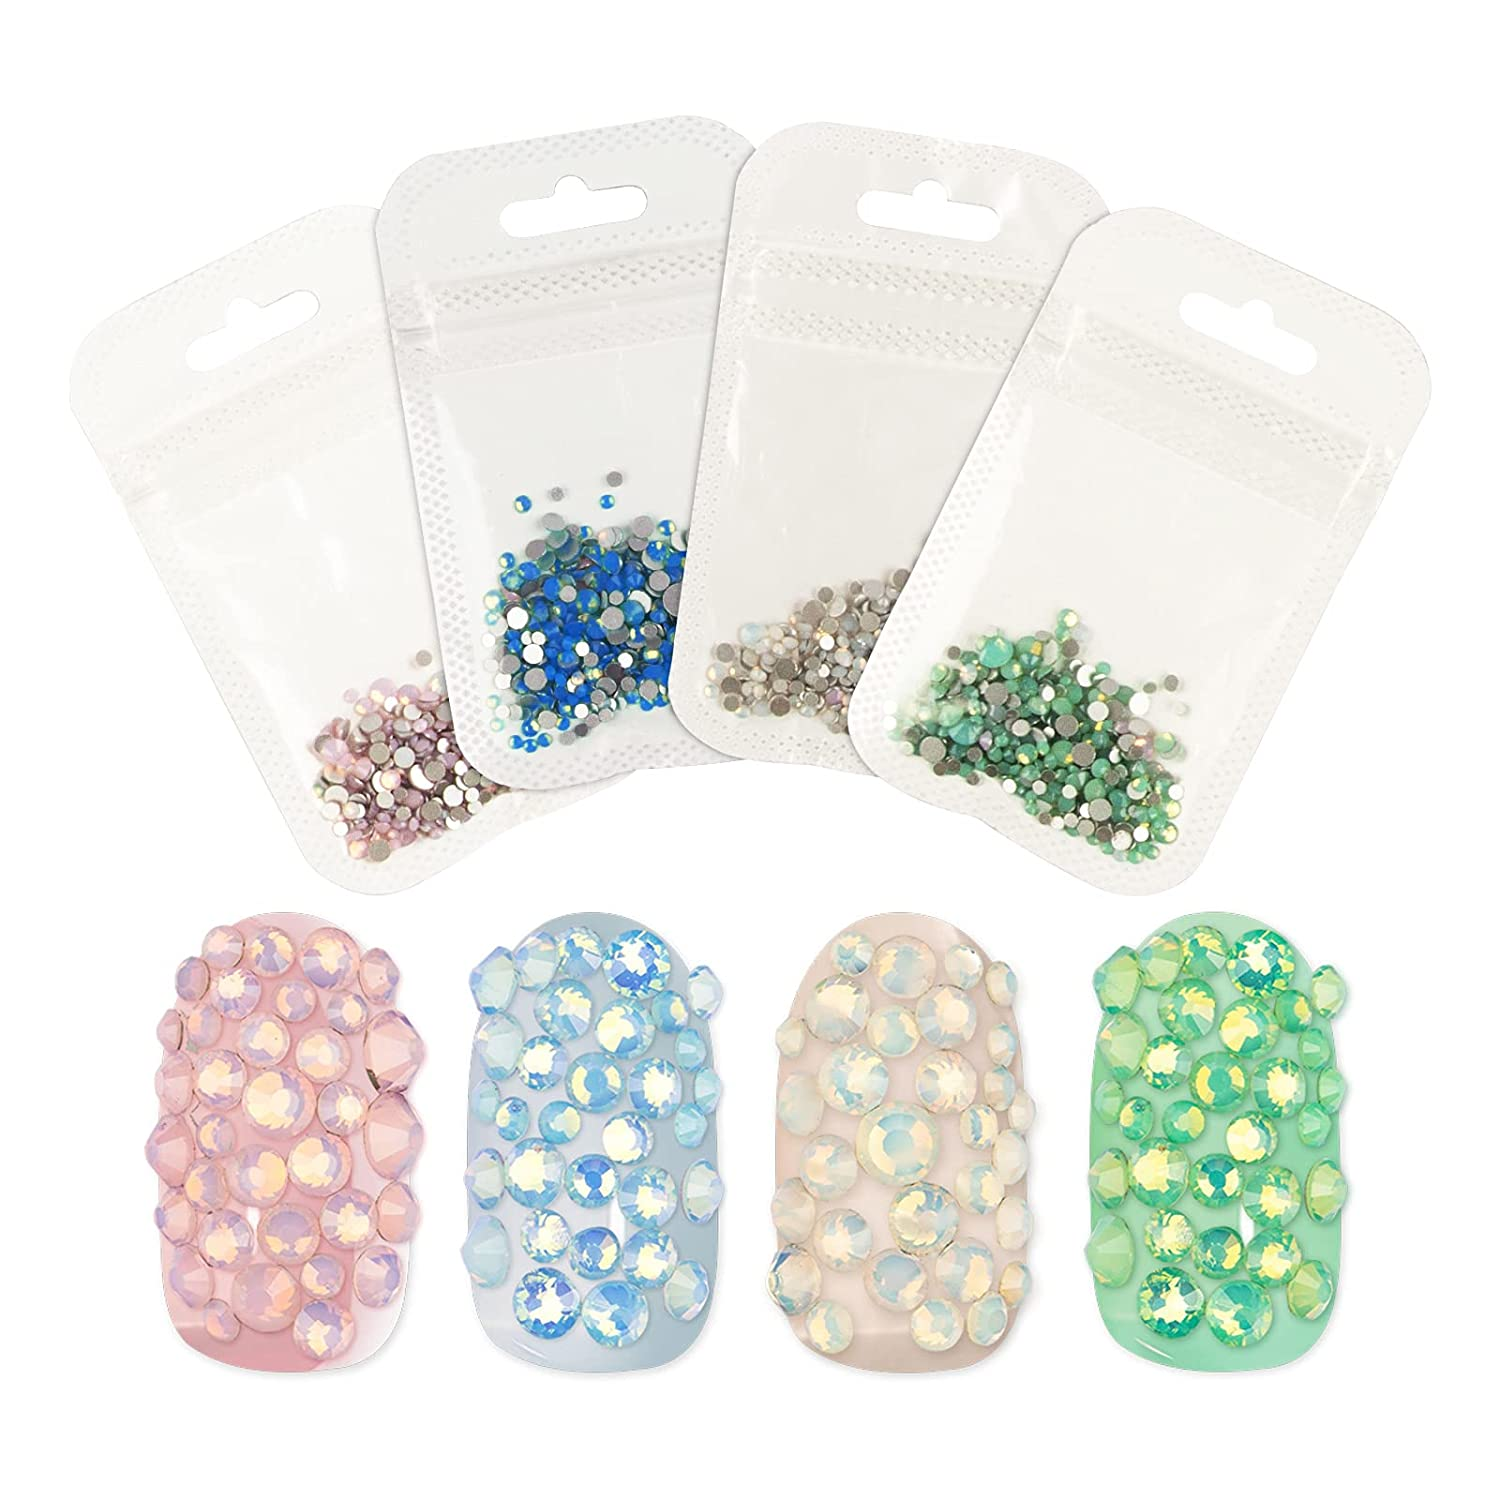 RONRONS 4 Pack Mix Size Sparkly Sales for sale Nail Flatback A Ranking integrated 1st place Opal Rhinestones